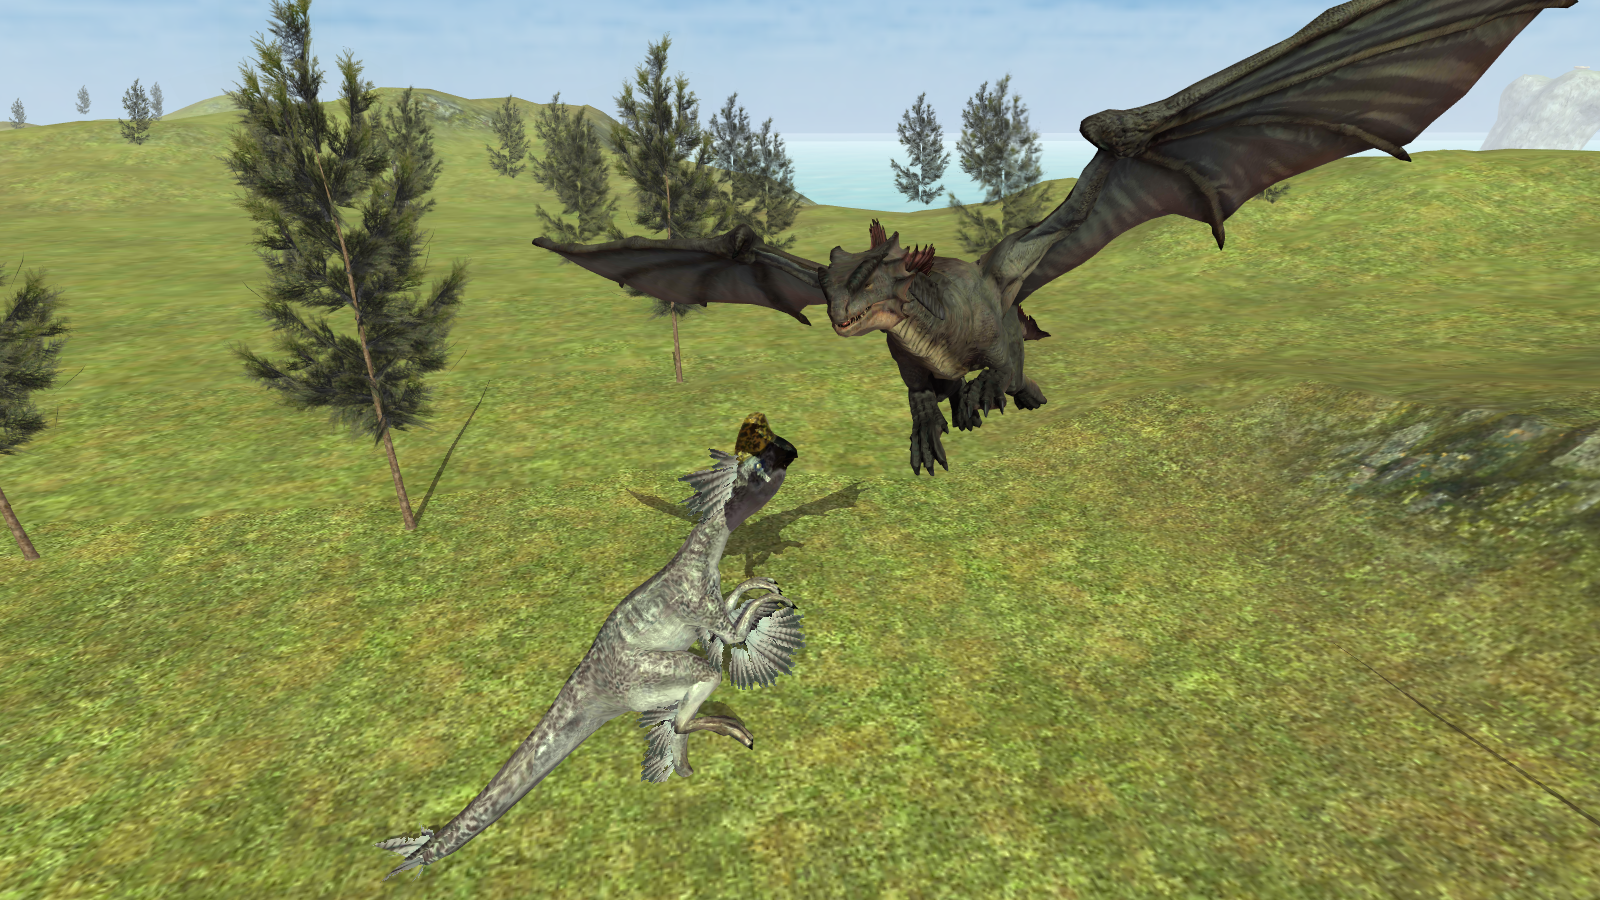 flying fury dragon simulator android apps on google play